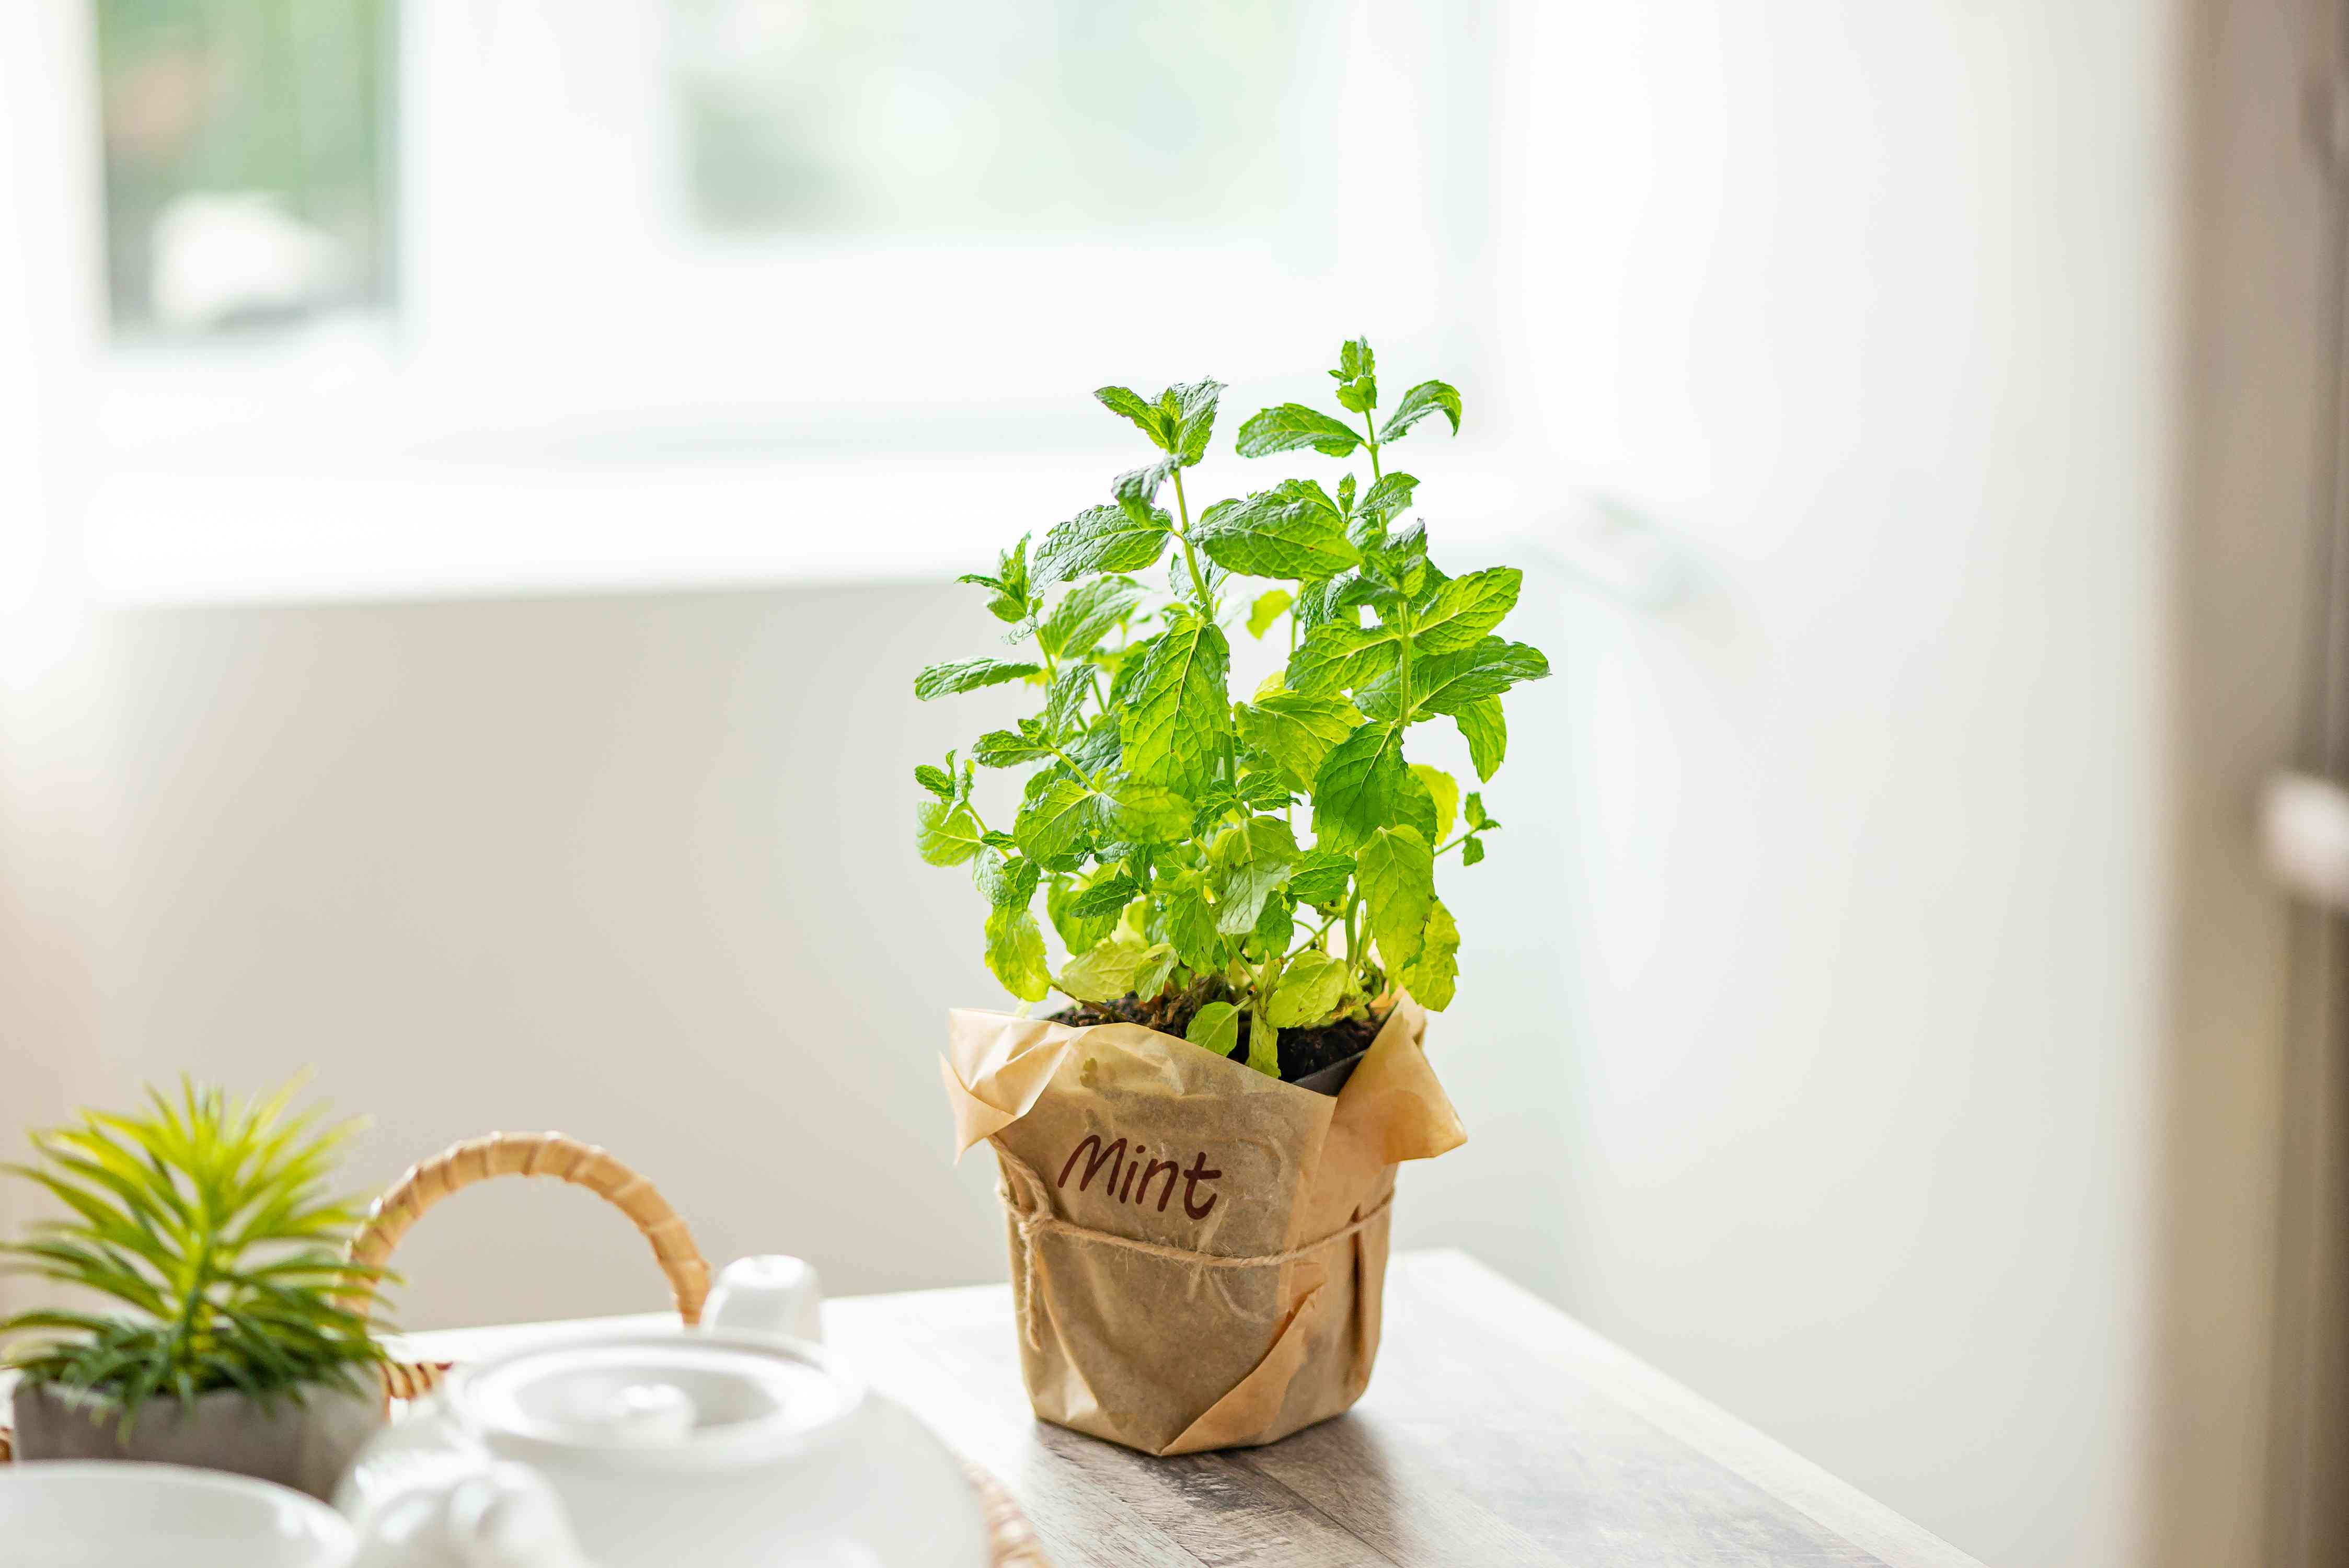 mint growing in a kitchen